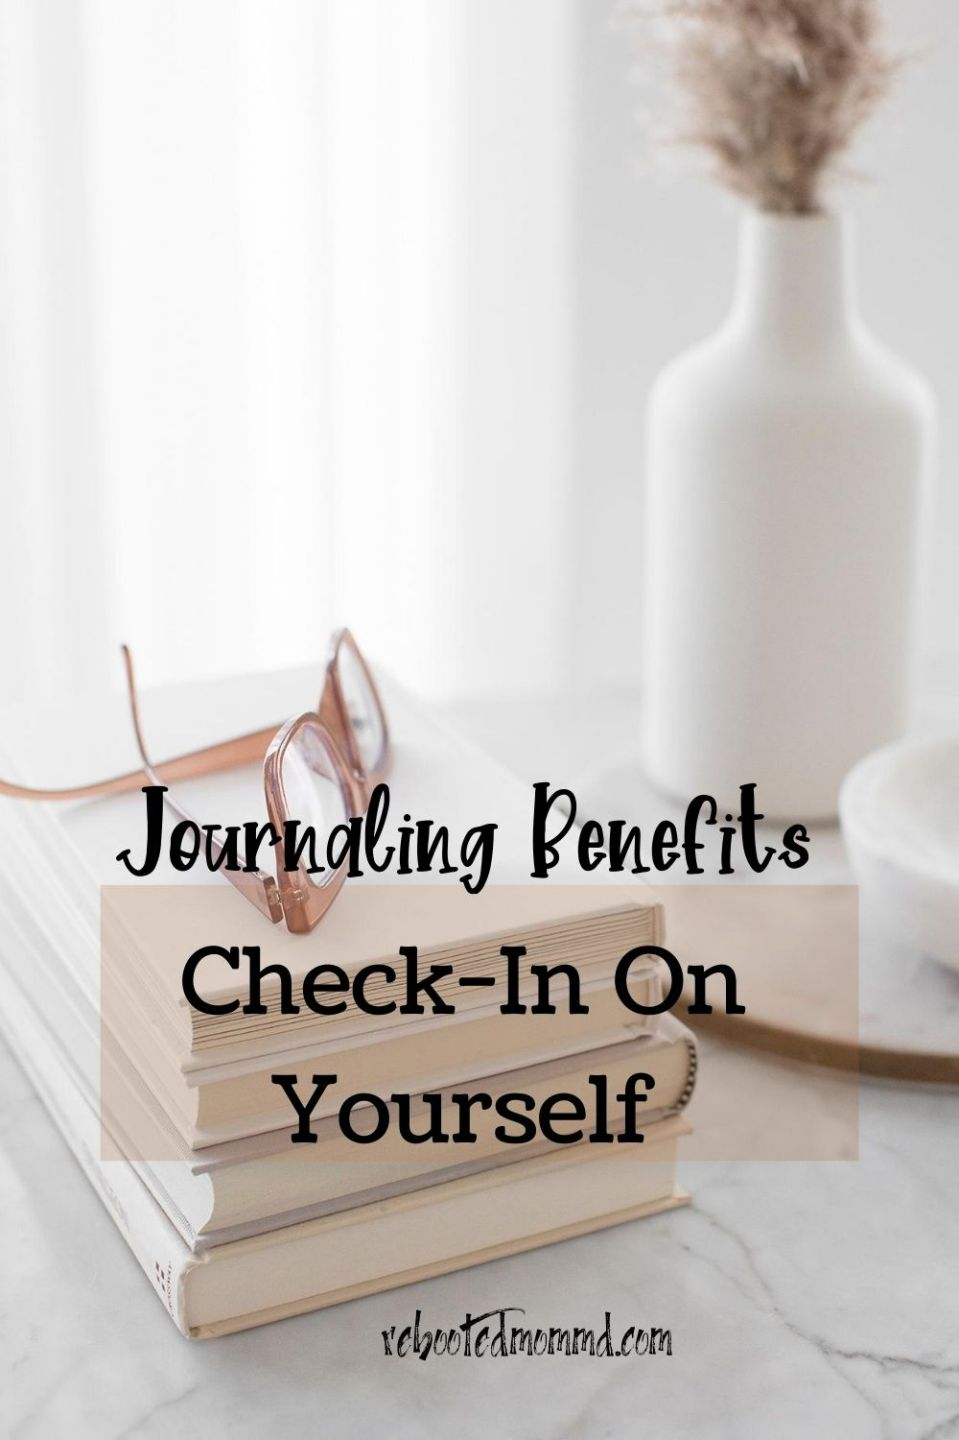 Check-in on Yourself with Your Journal